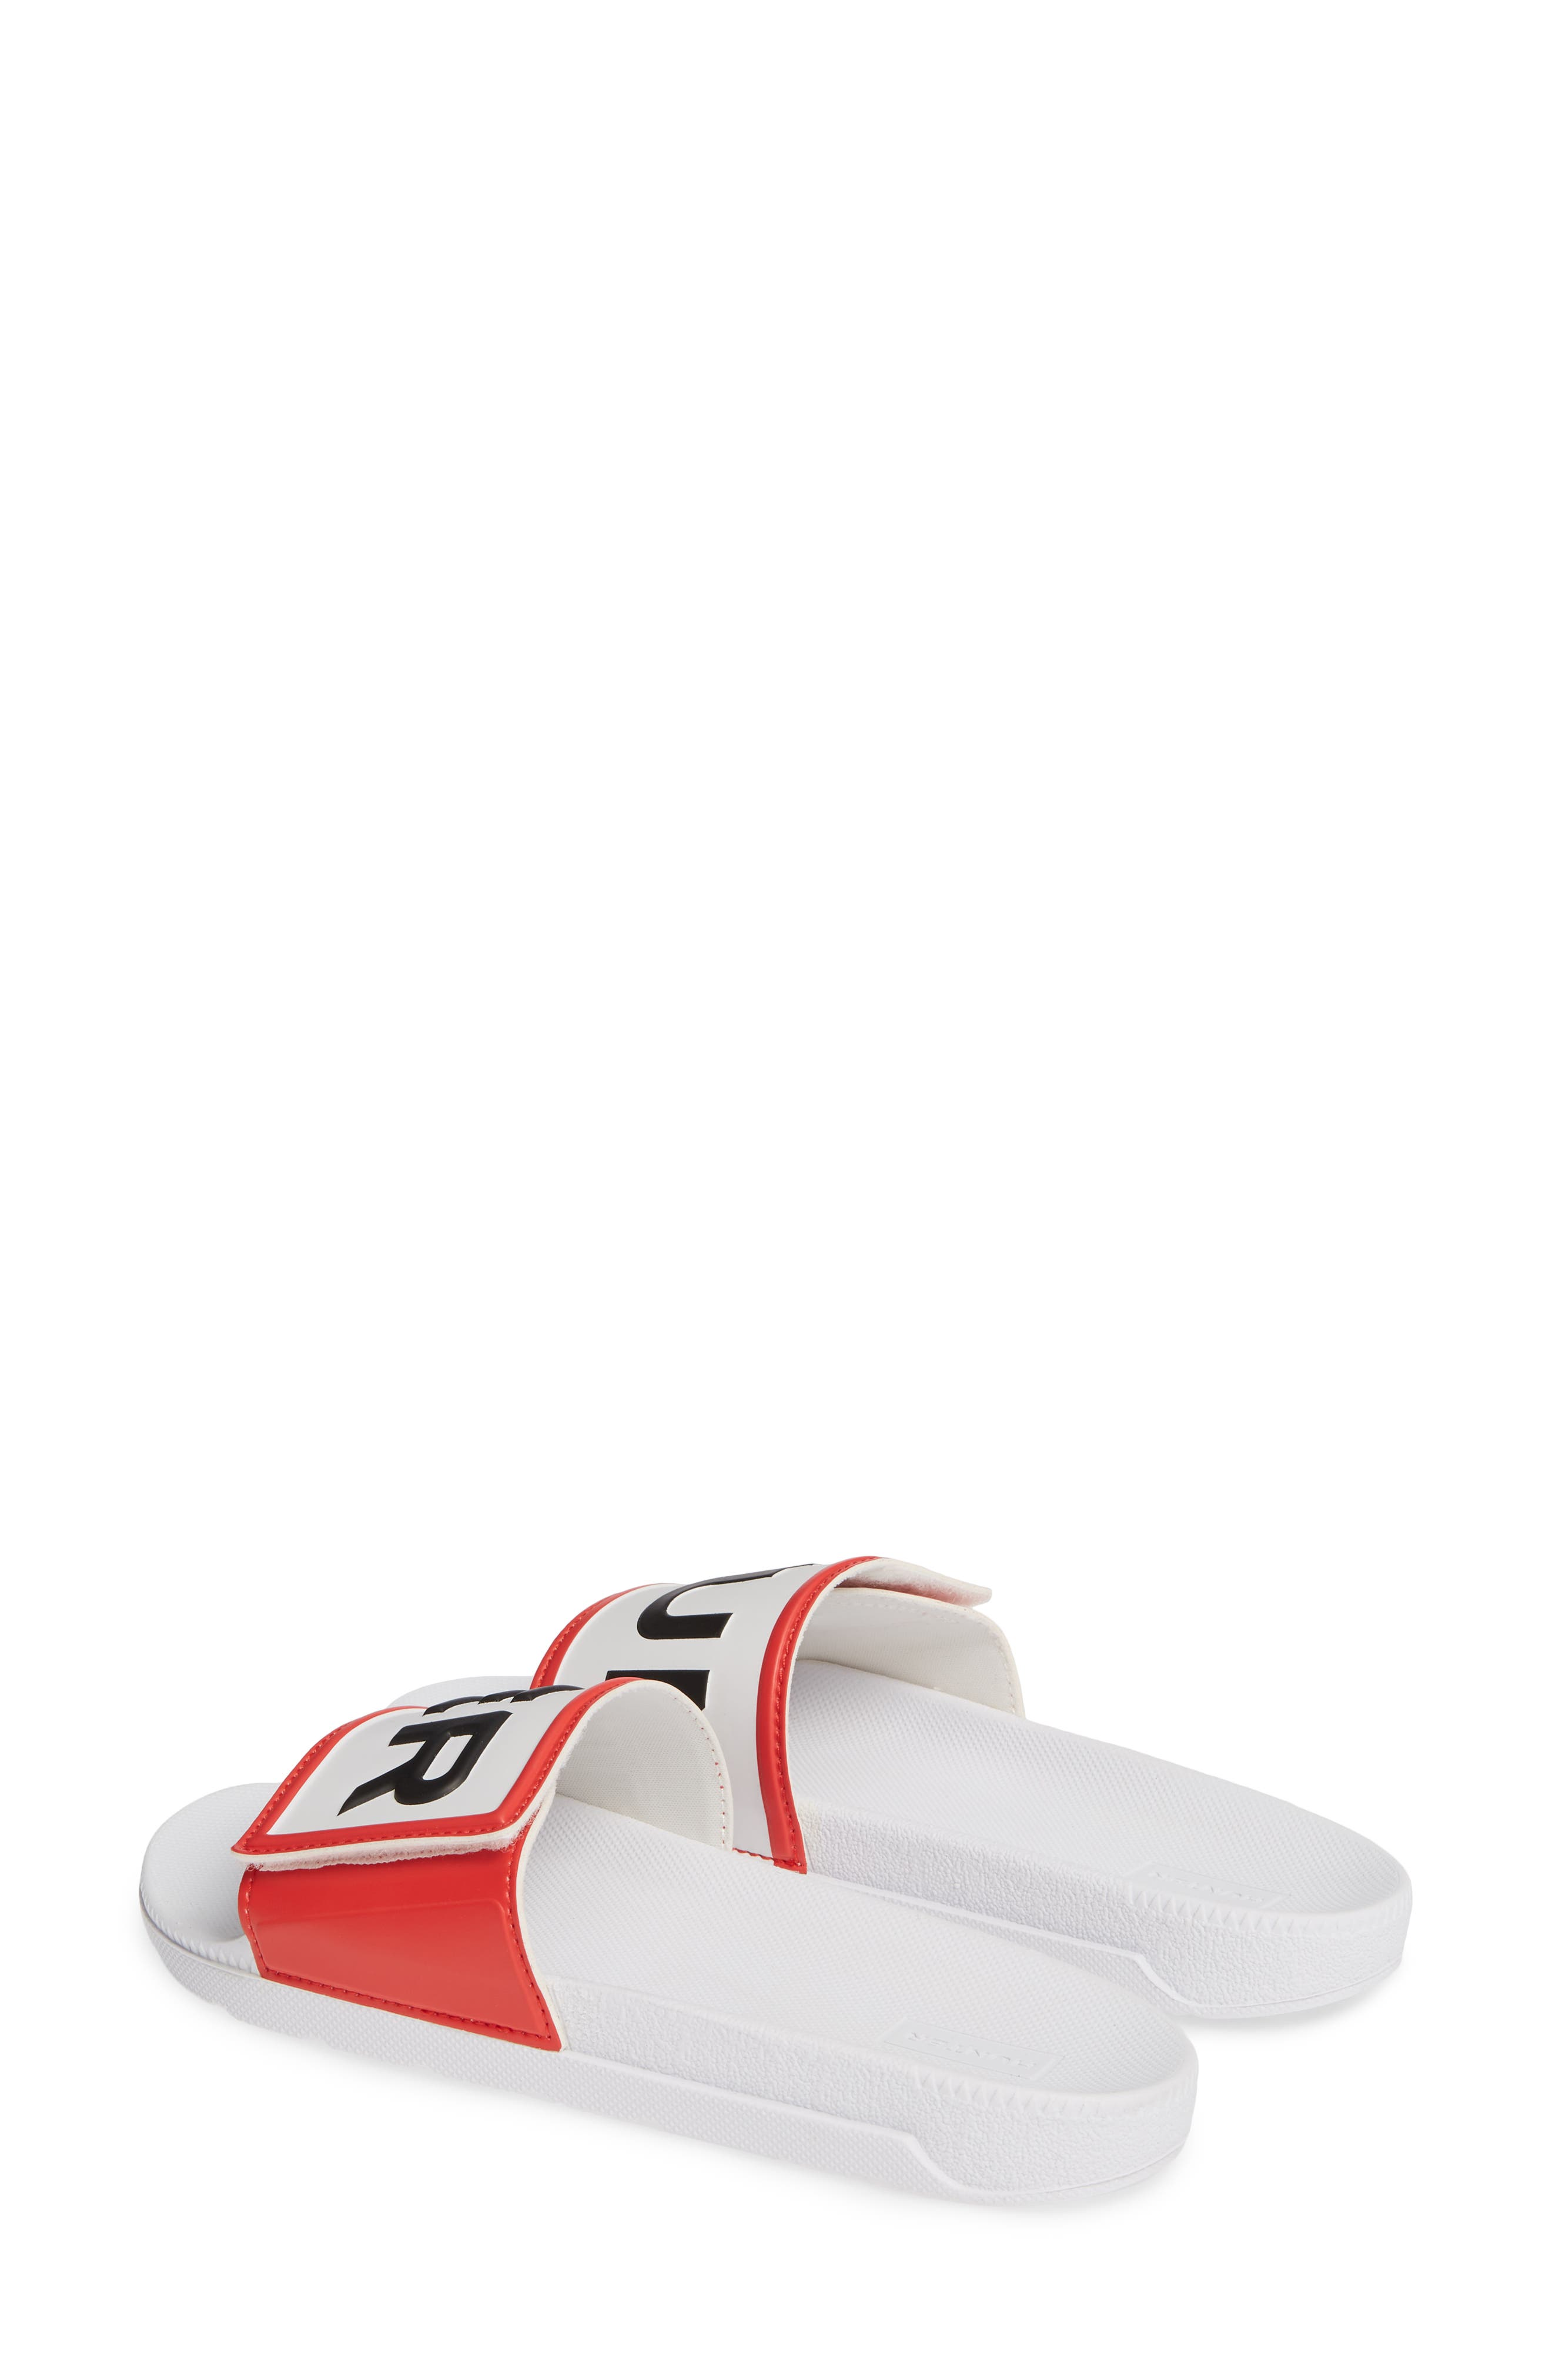 HUNTER,                             Original Adjustable Logo Slide Sandal,                             Alternate thumbnail 3, color,                             WHITE/ WHITE